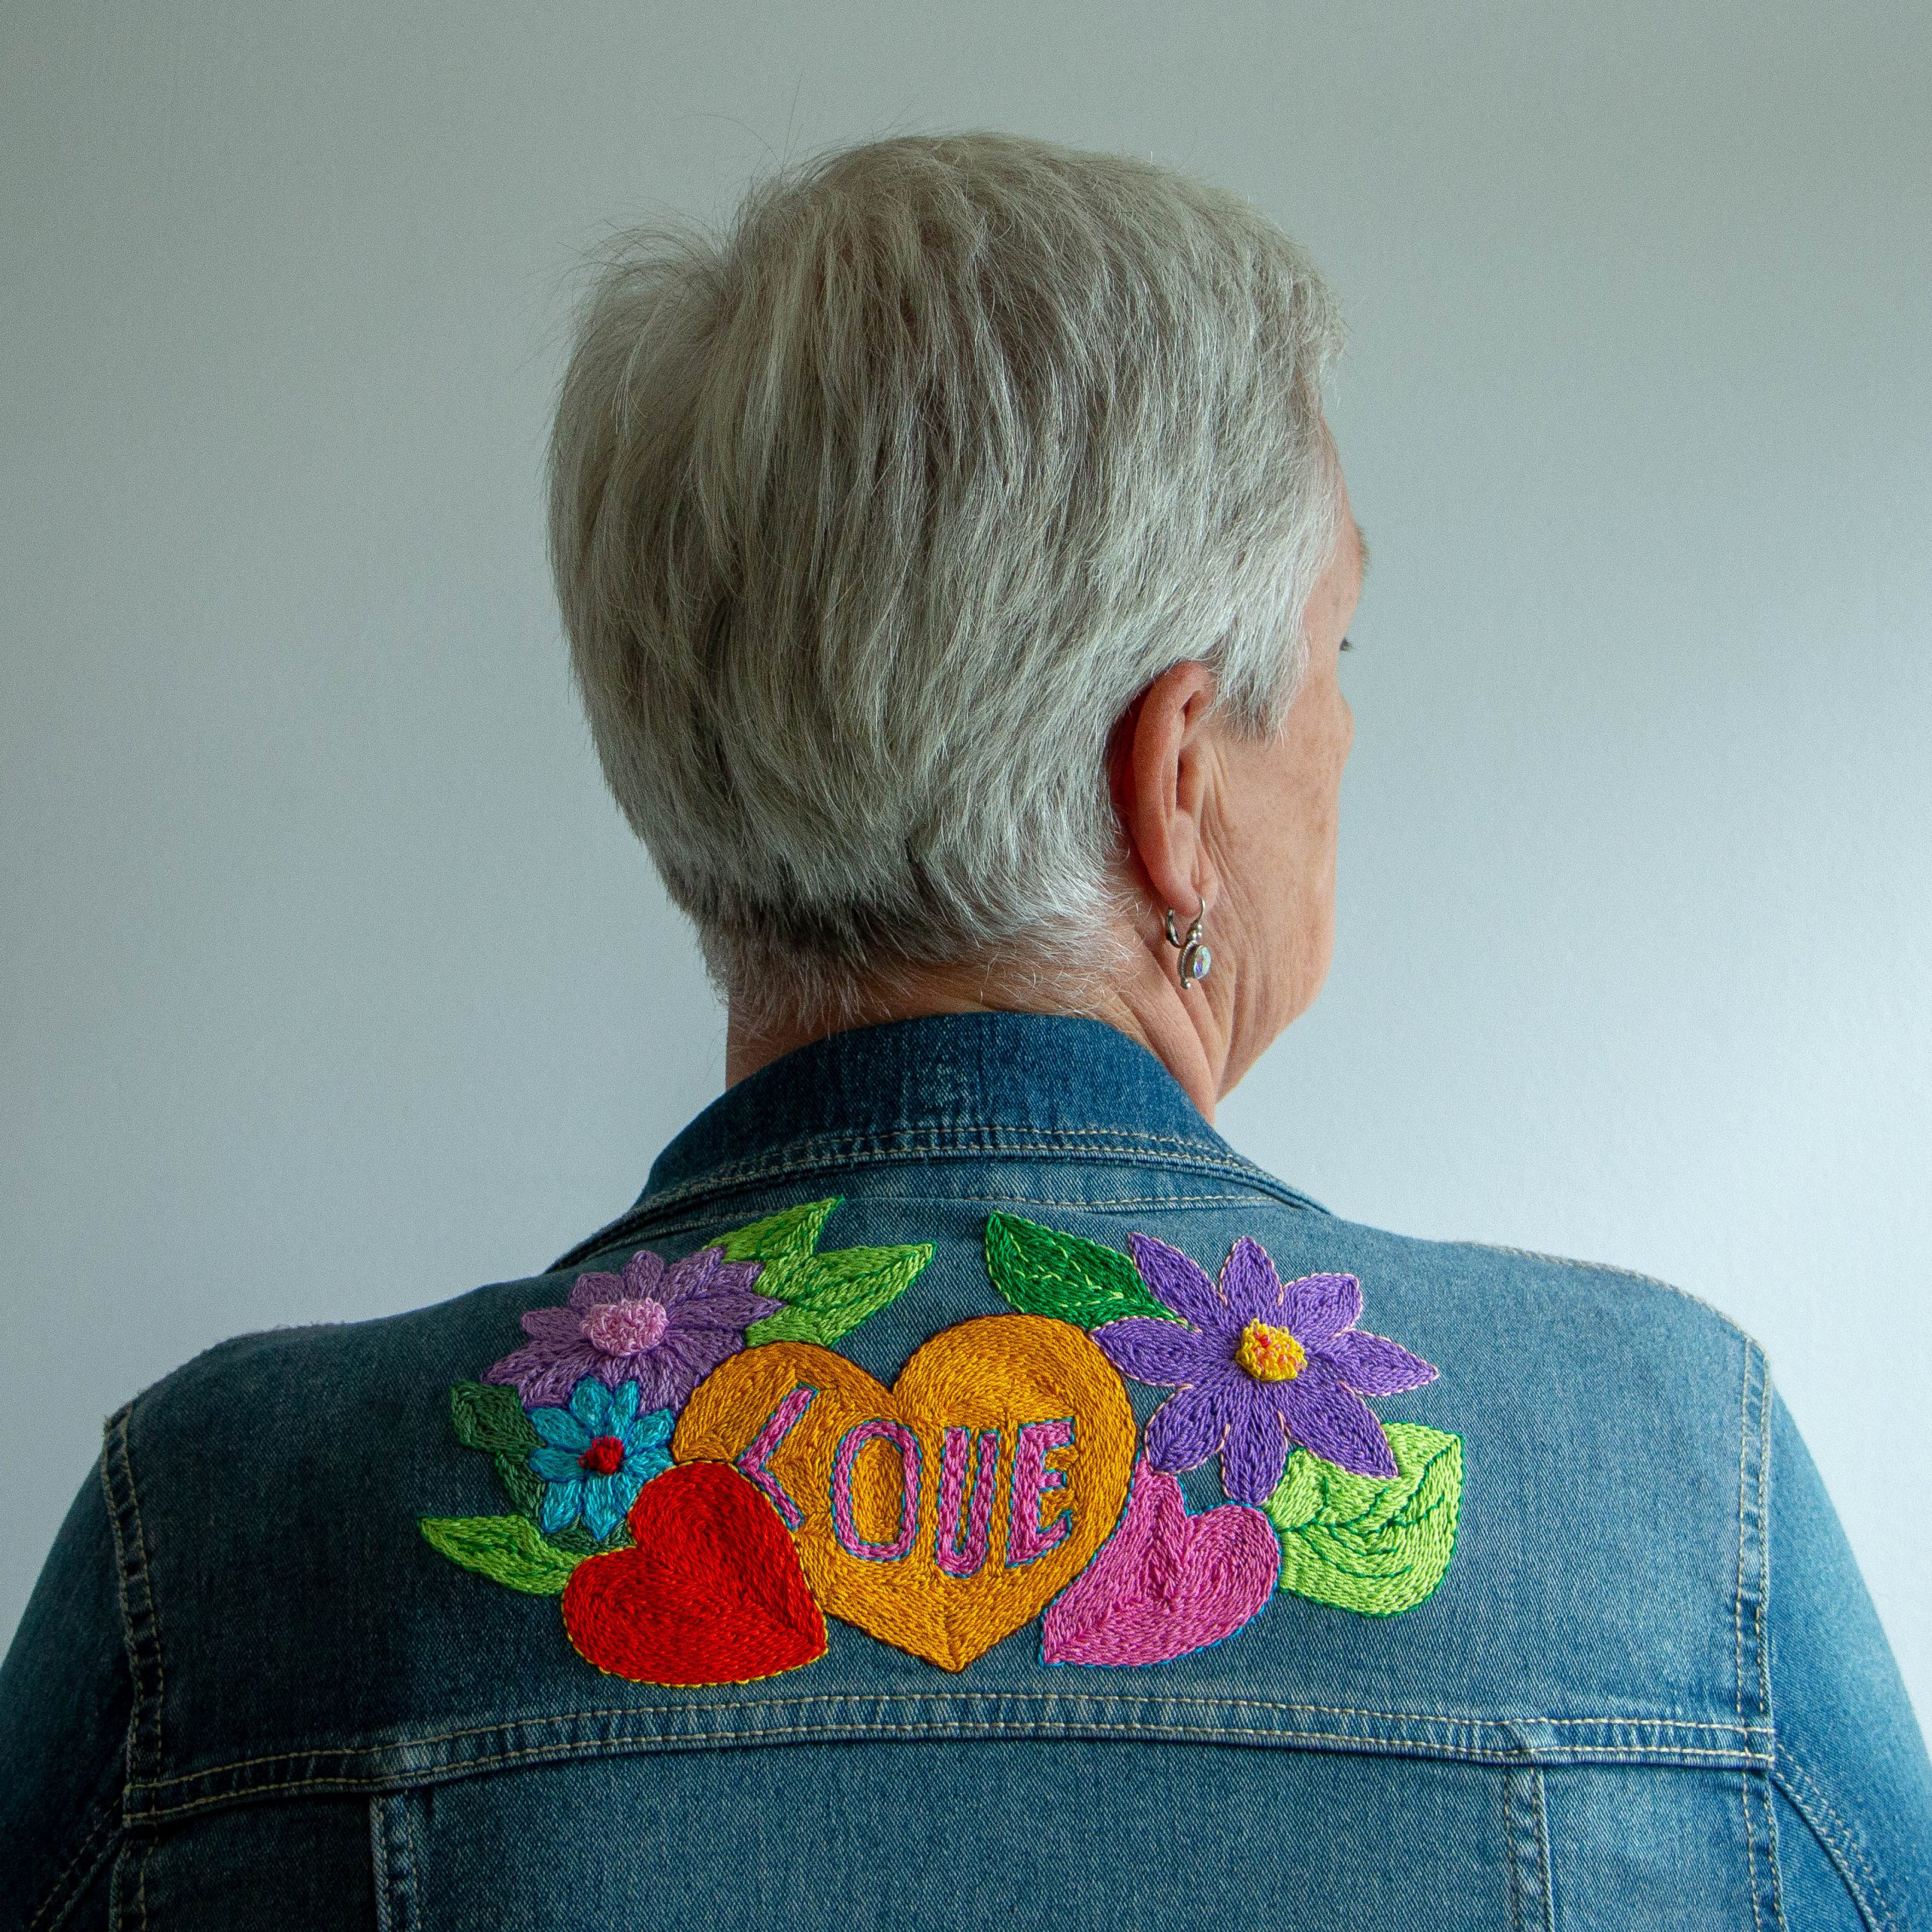 Punchneedle patch on jeans jacket